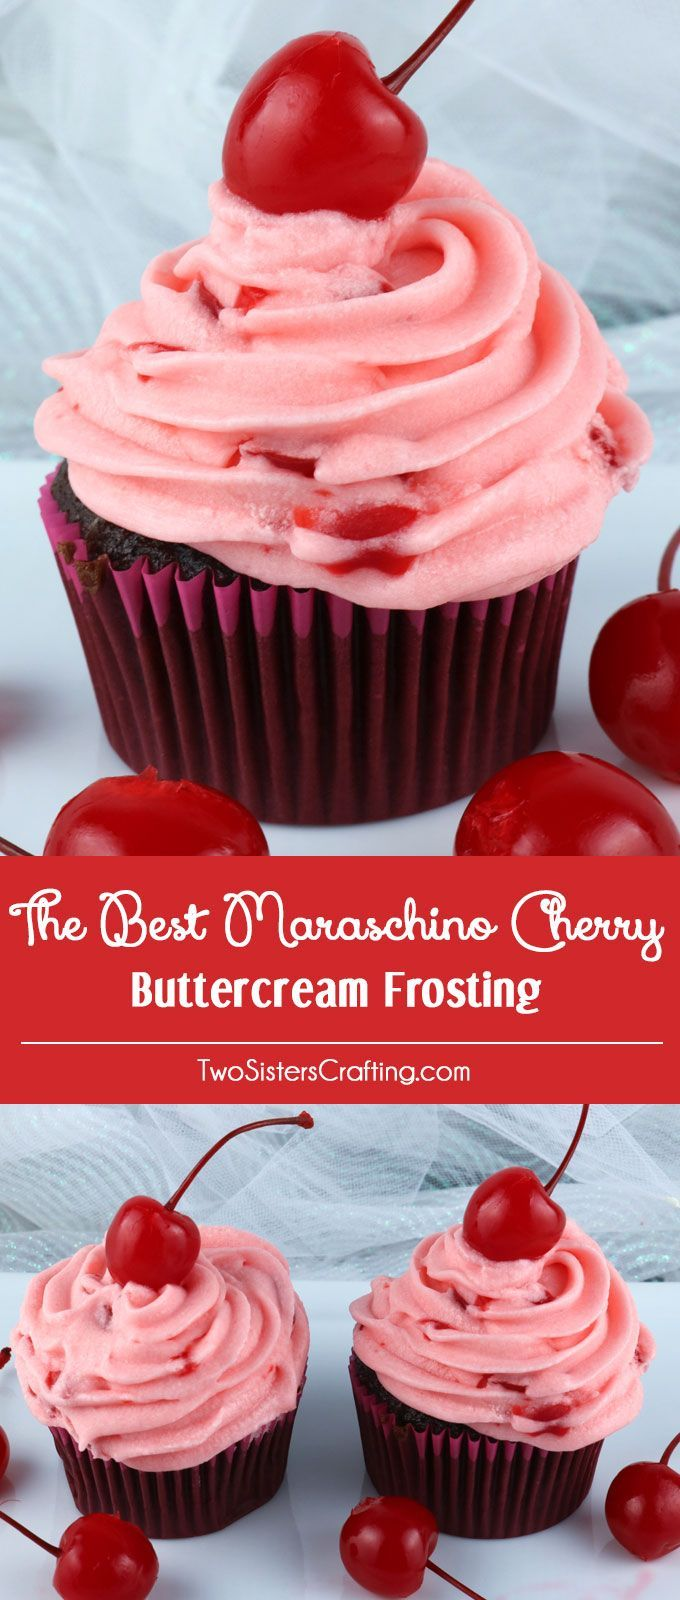 The Best Maraschino Cherry Buttercream Frosting - our delicious buttercream…